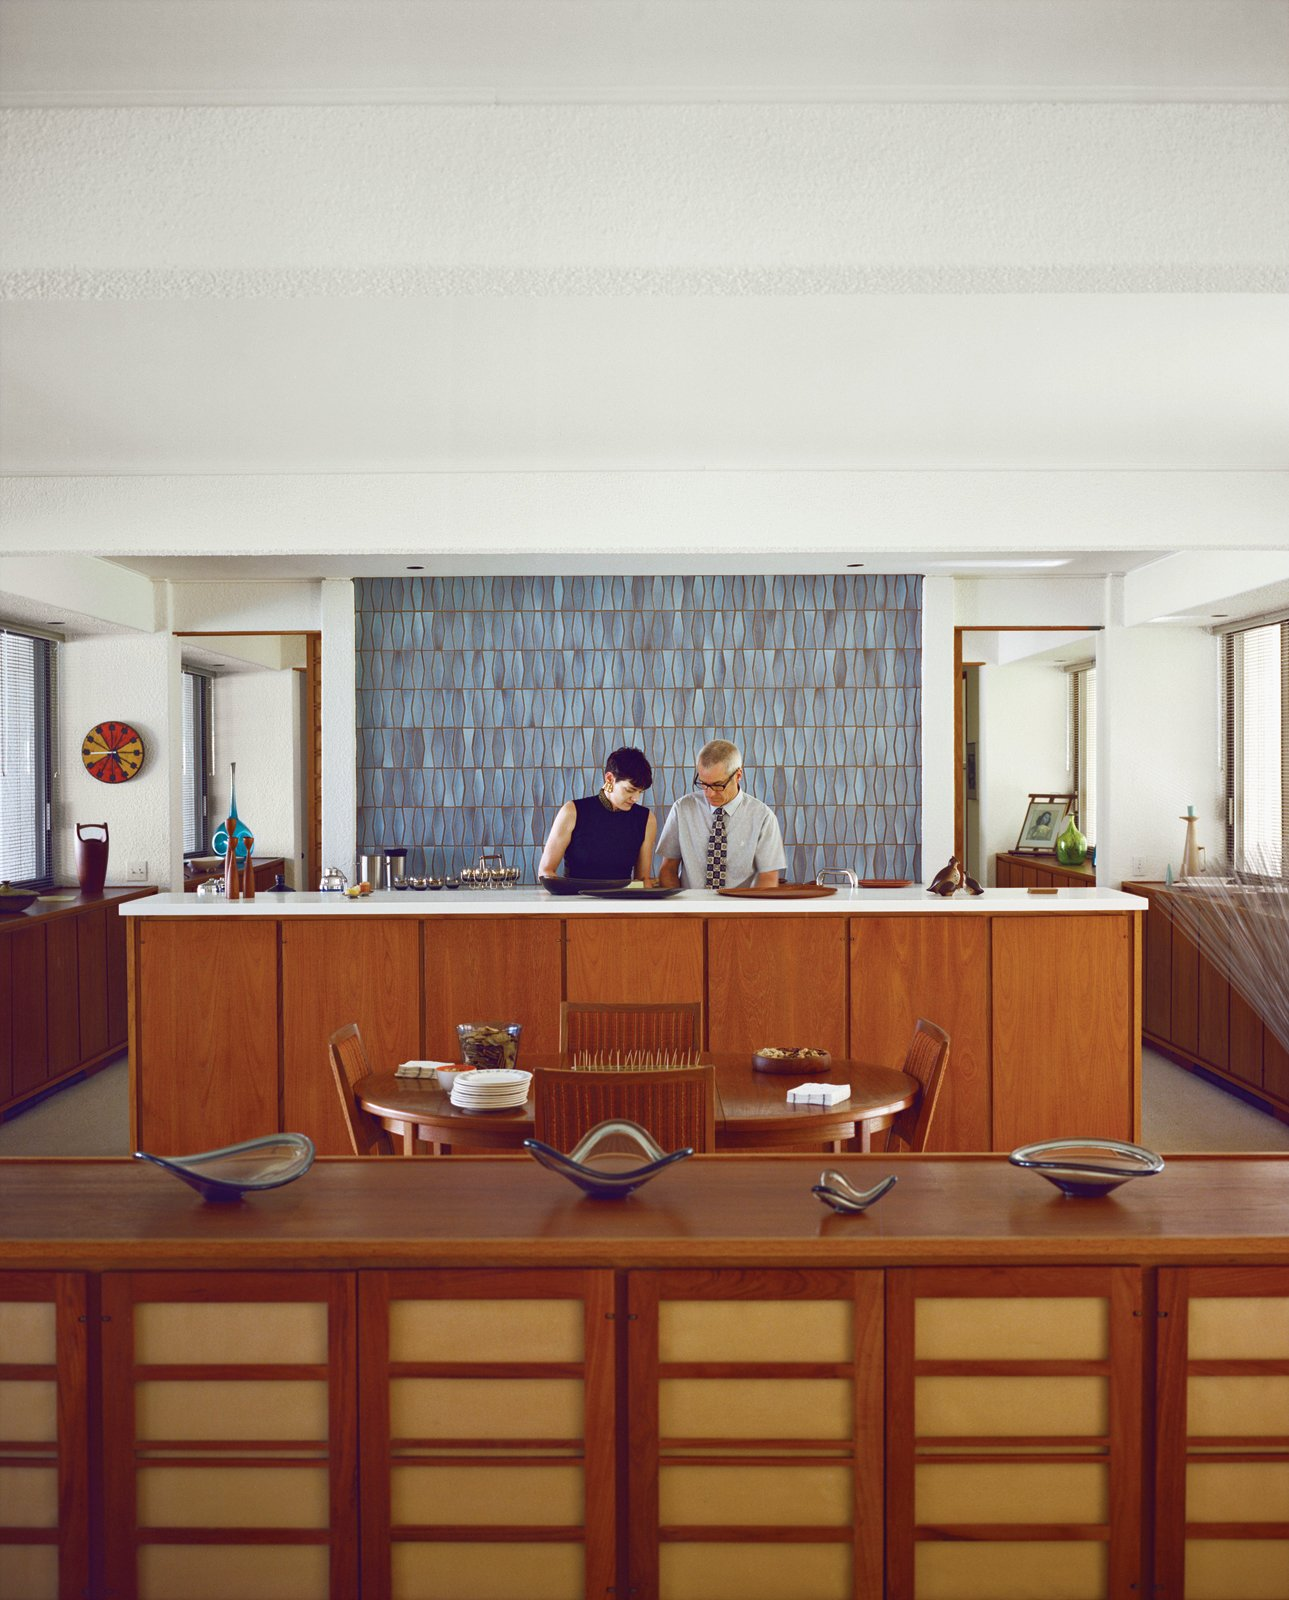 Stacey and Doug prepare food before the kitchen's massive wall of soothing tile from Heath Ceramics. Tagged: Kitchen, Wood Cabinet, and Ceramic Tile Backsplashe.  Best Photos from Modern Home in a California Resort Town